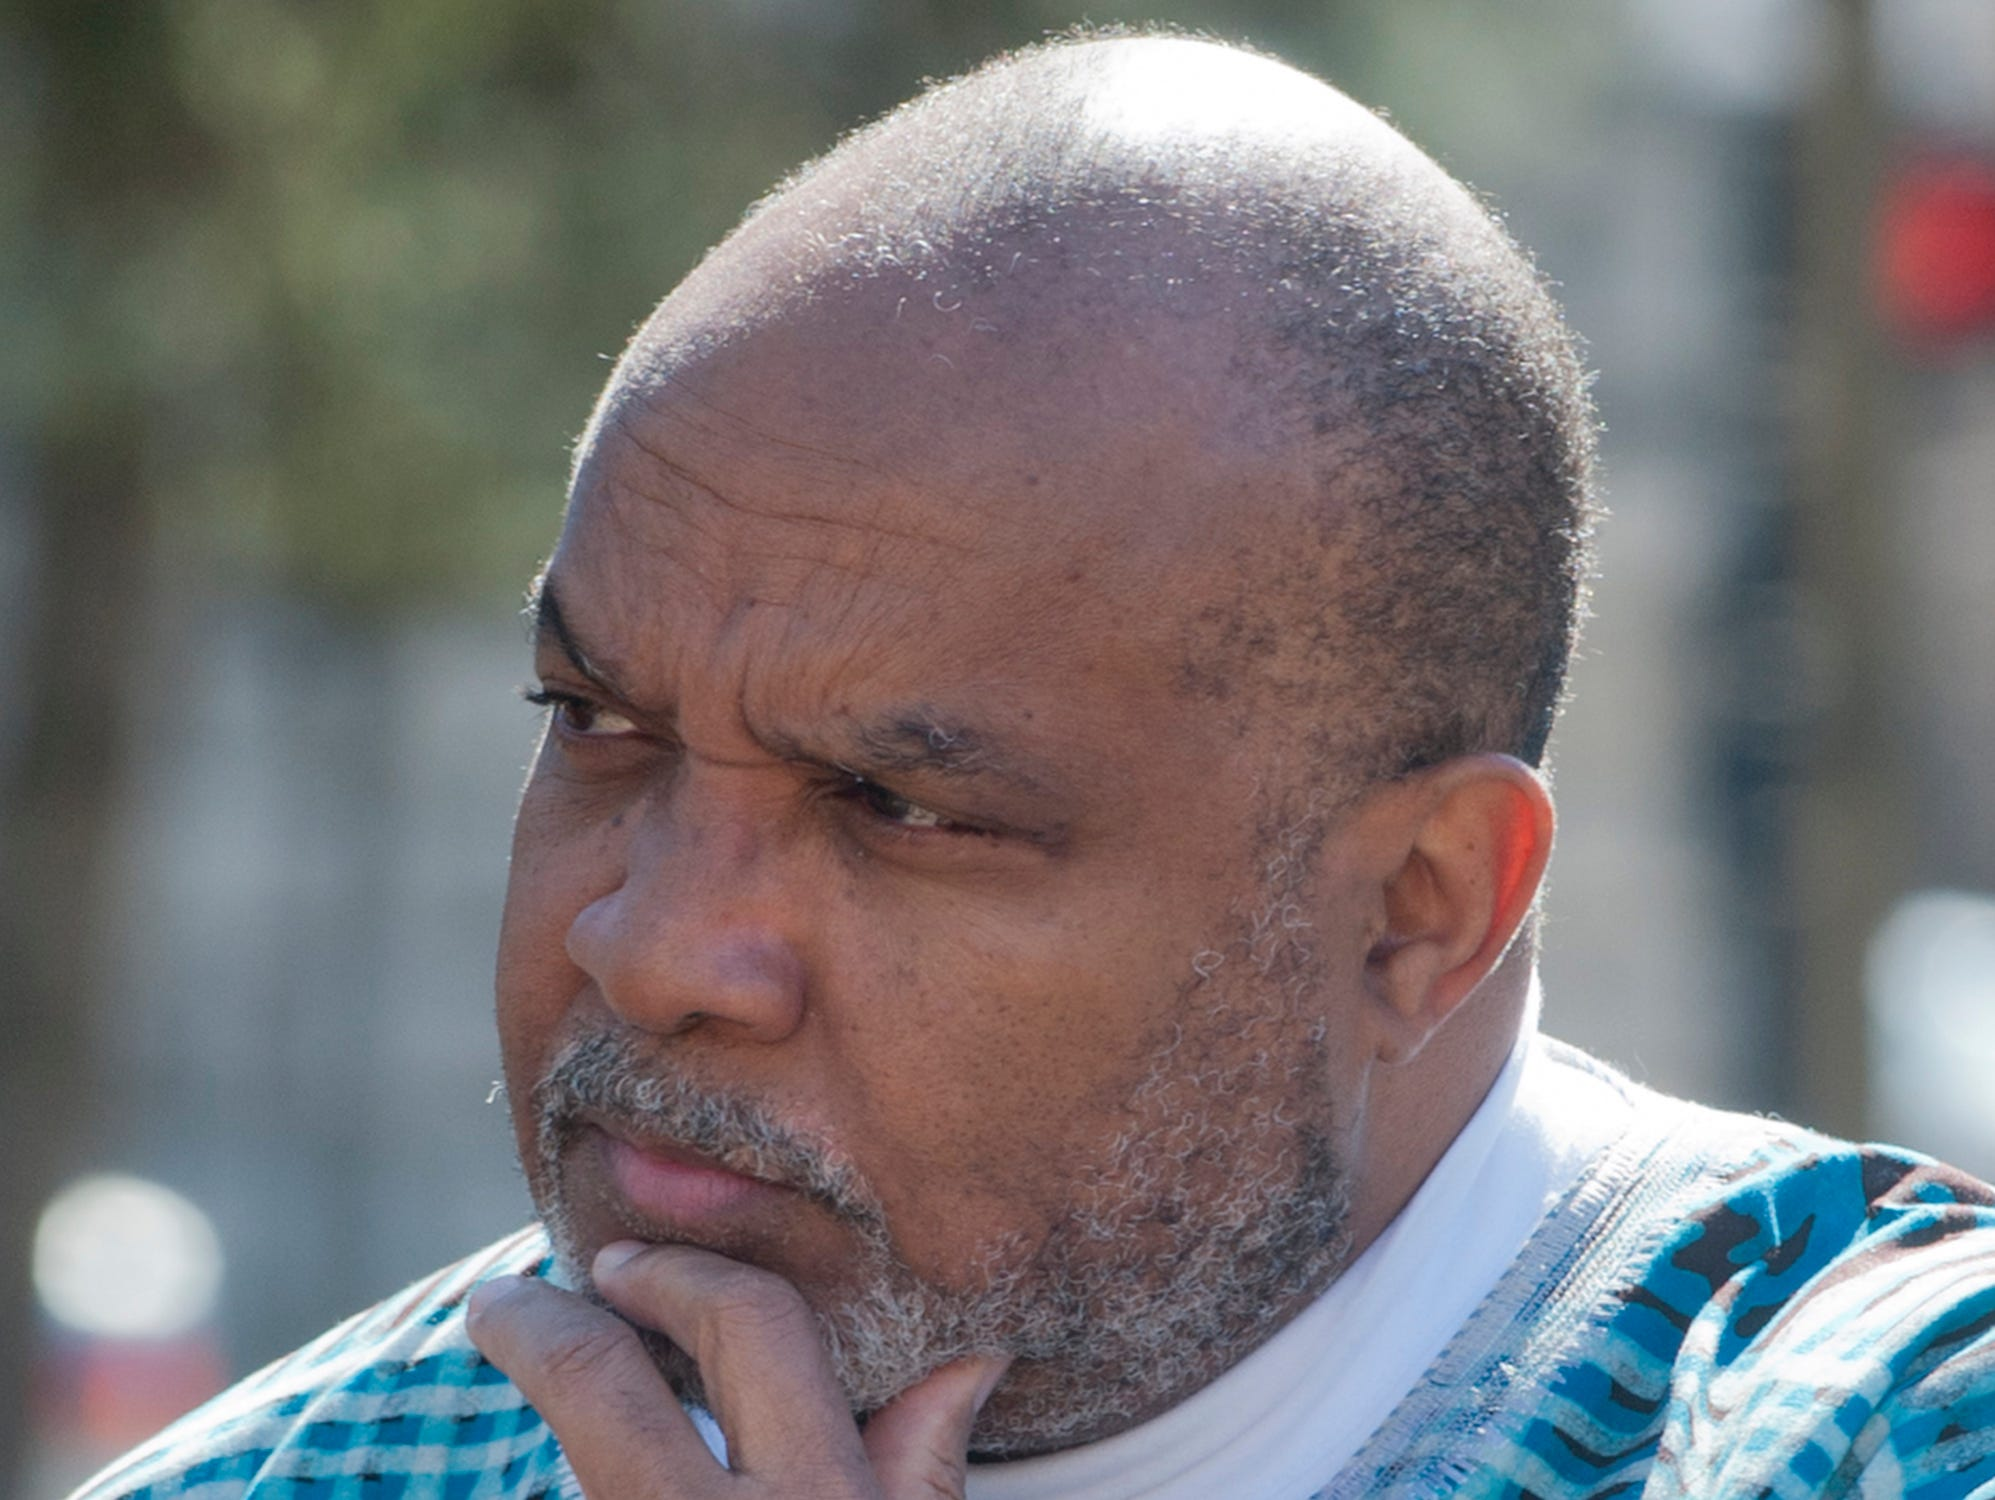 Alton Pollard, president of the Louisville Presbyterian Theological Seminary listens to a speaker at the vigil.